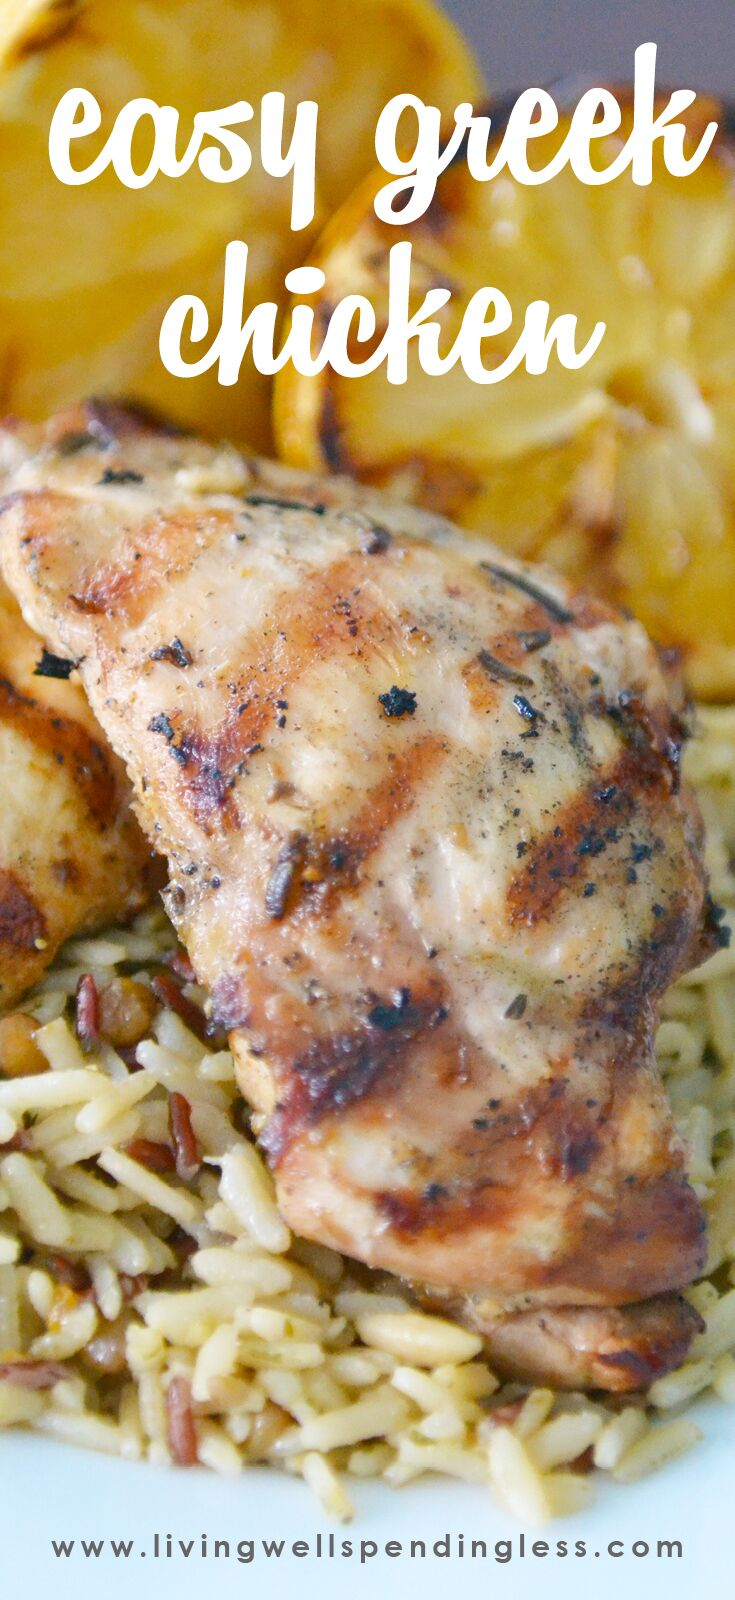 Easy Greek Chicken that's delicious, flavorful and moist.